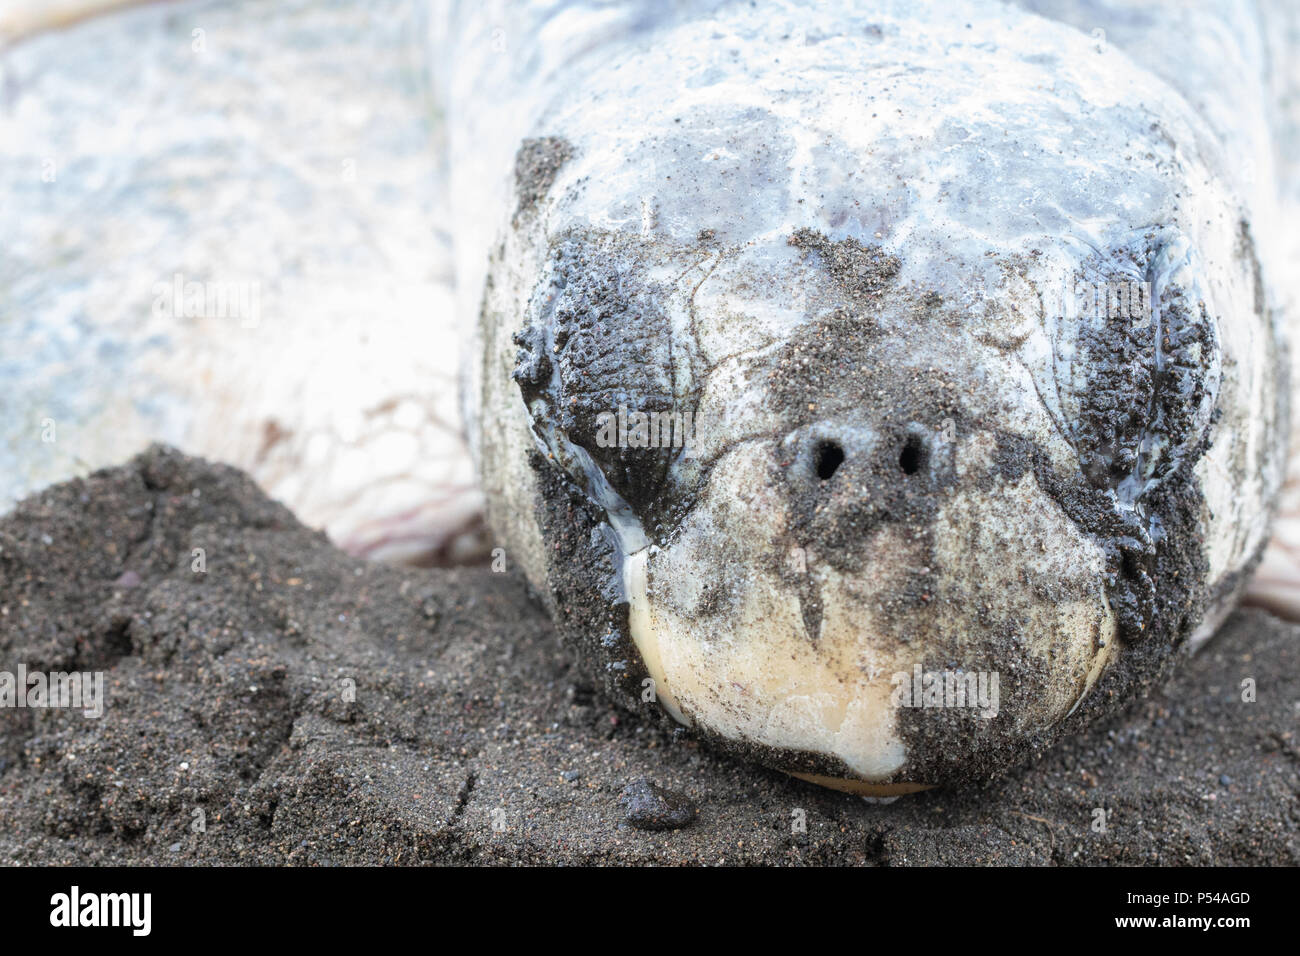 An olive ridley sea turtle (Lepidochelys olivacea) lays eggs in a volcanic sand beach in Costa Rica - Stock Image